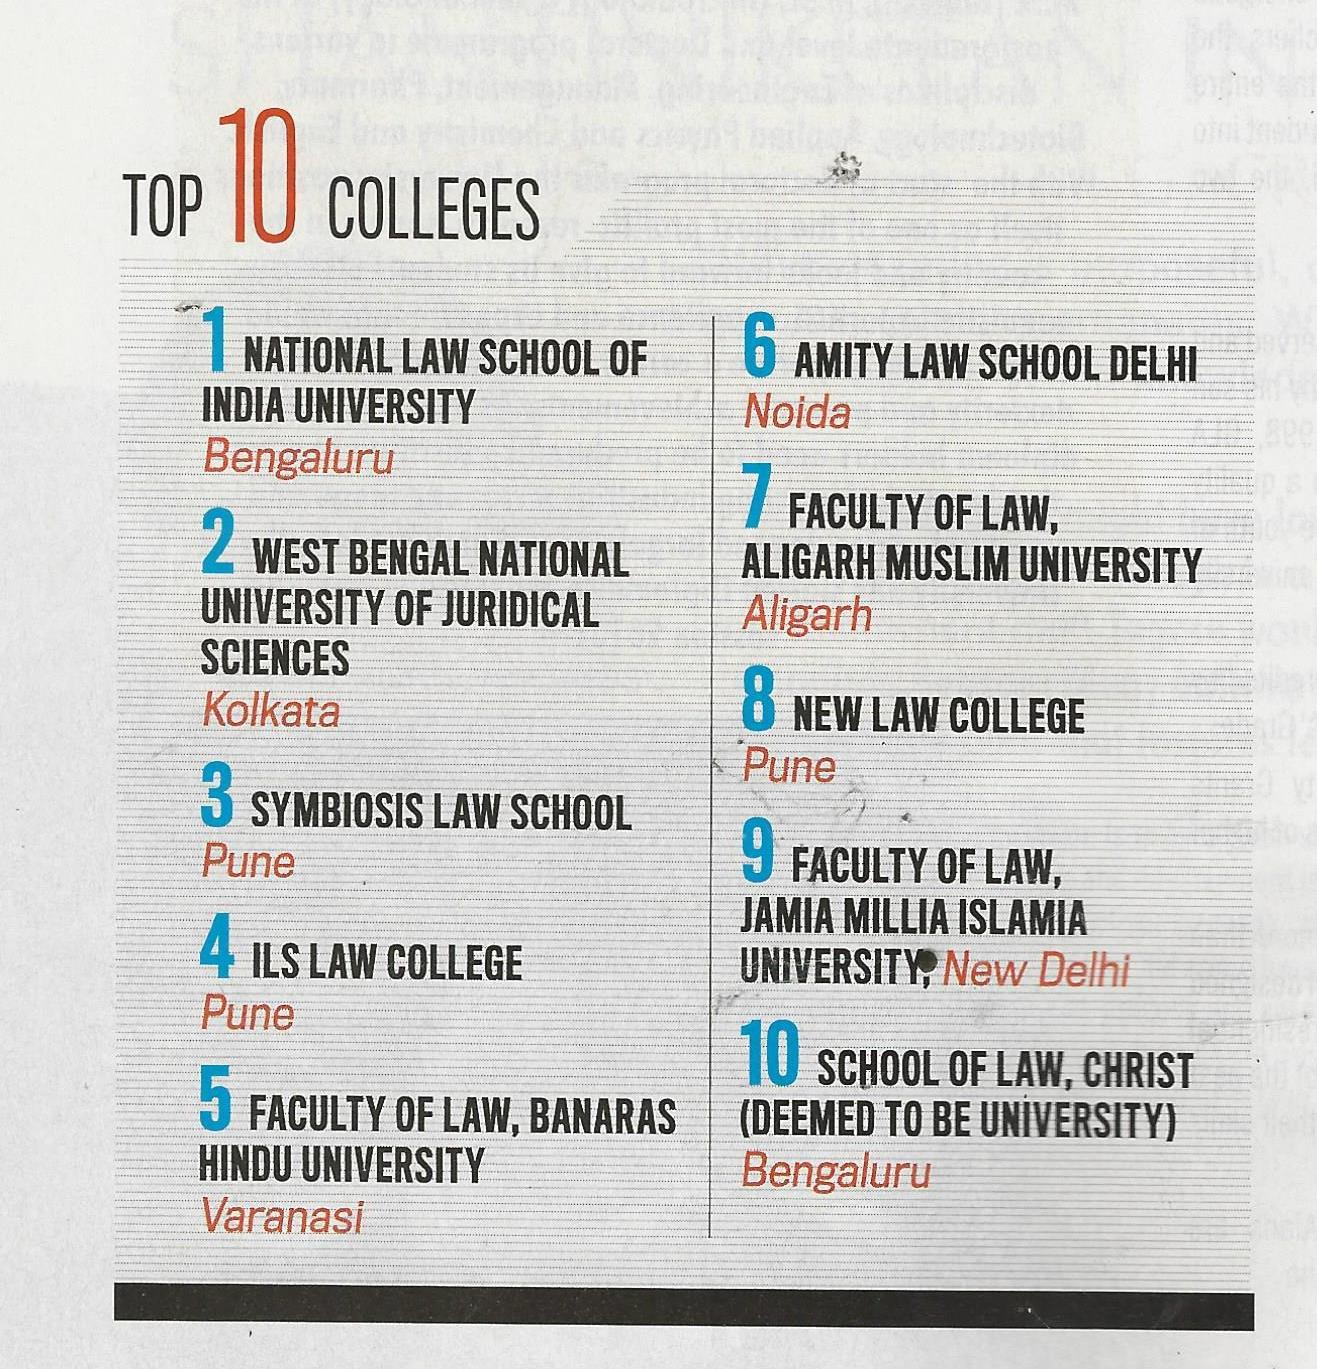 Top 10 Colleges- Amity Law School ranked No 6 Details